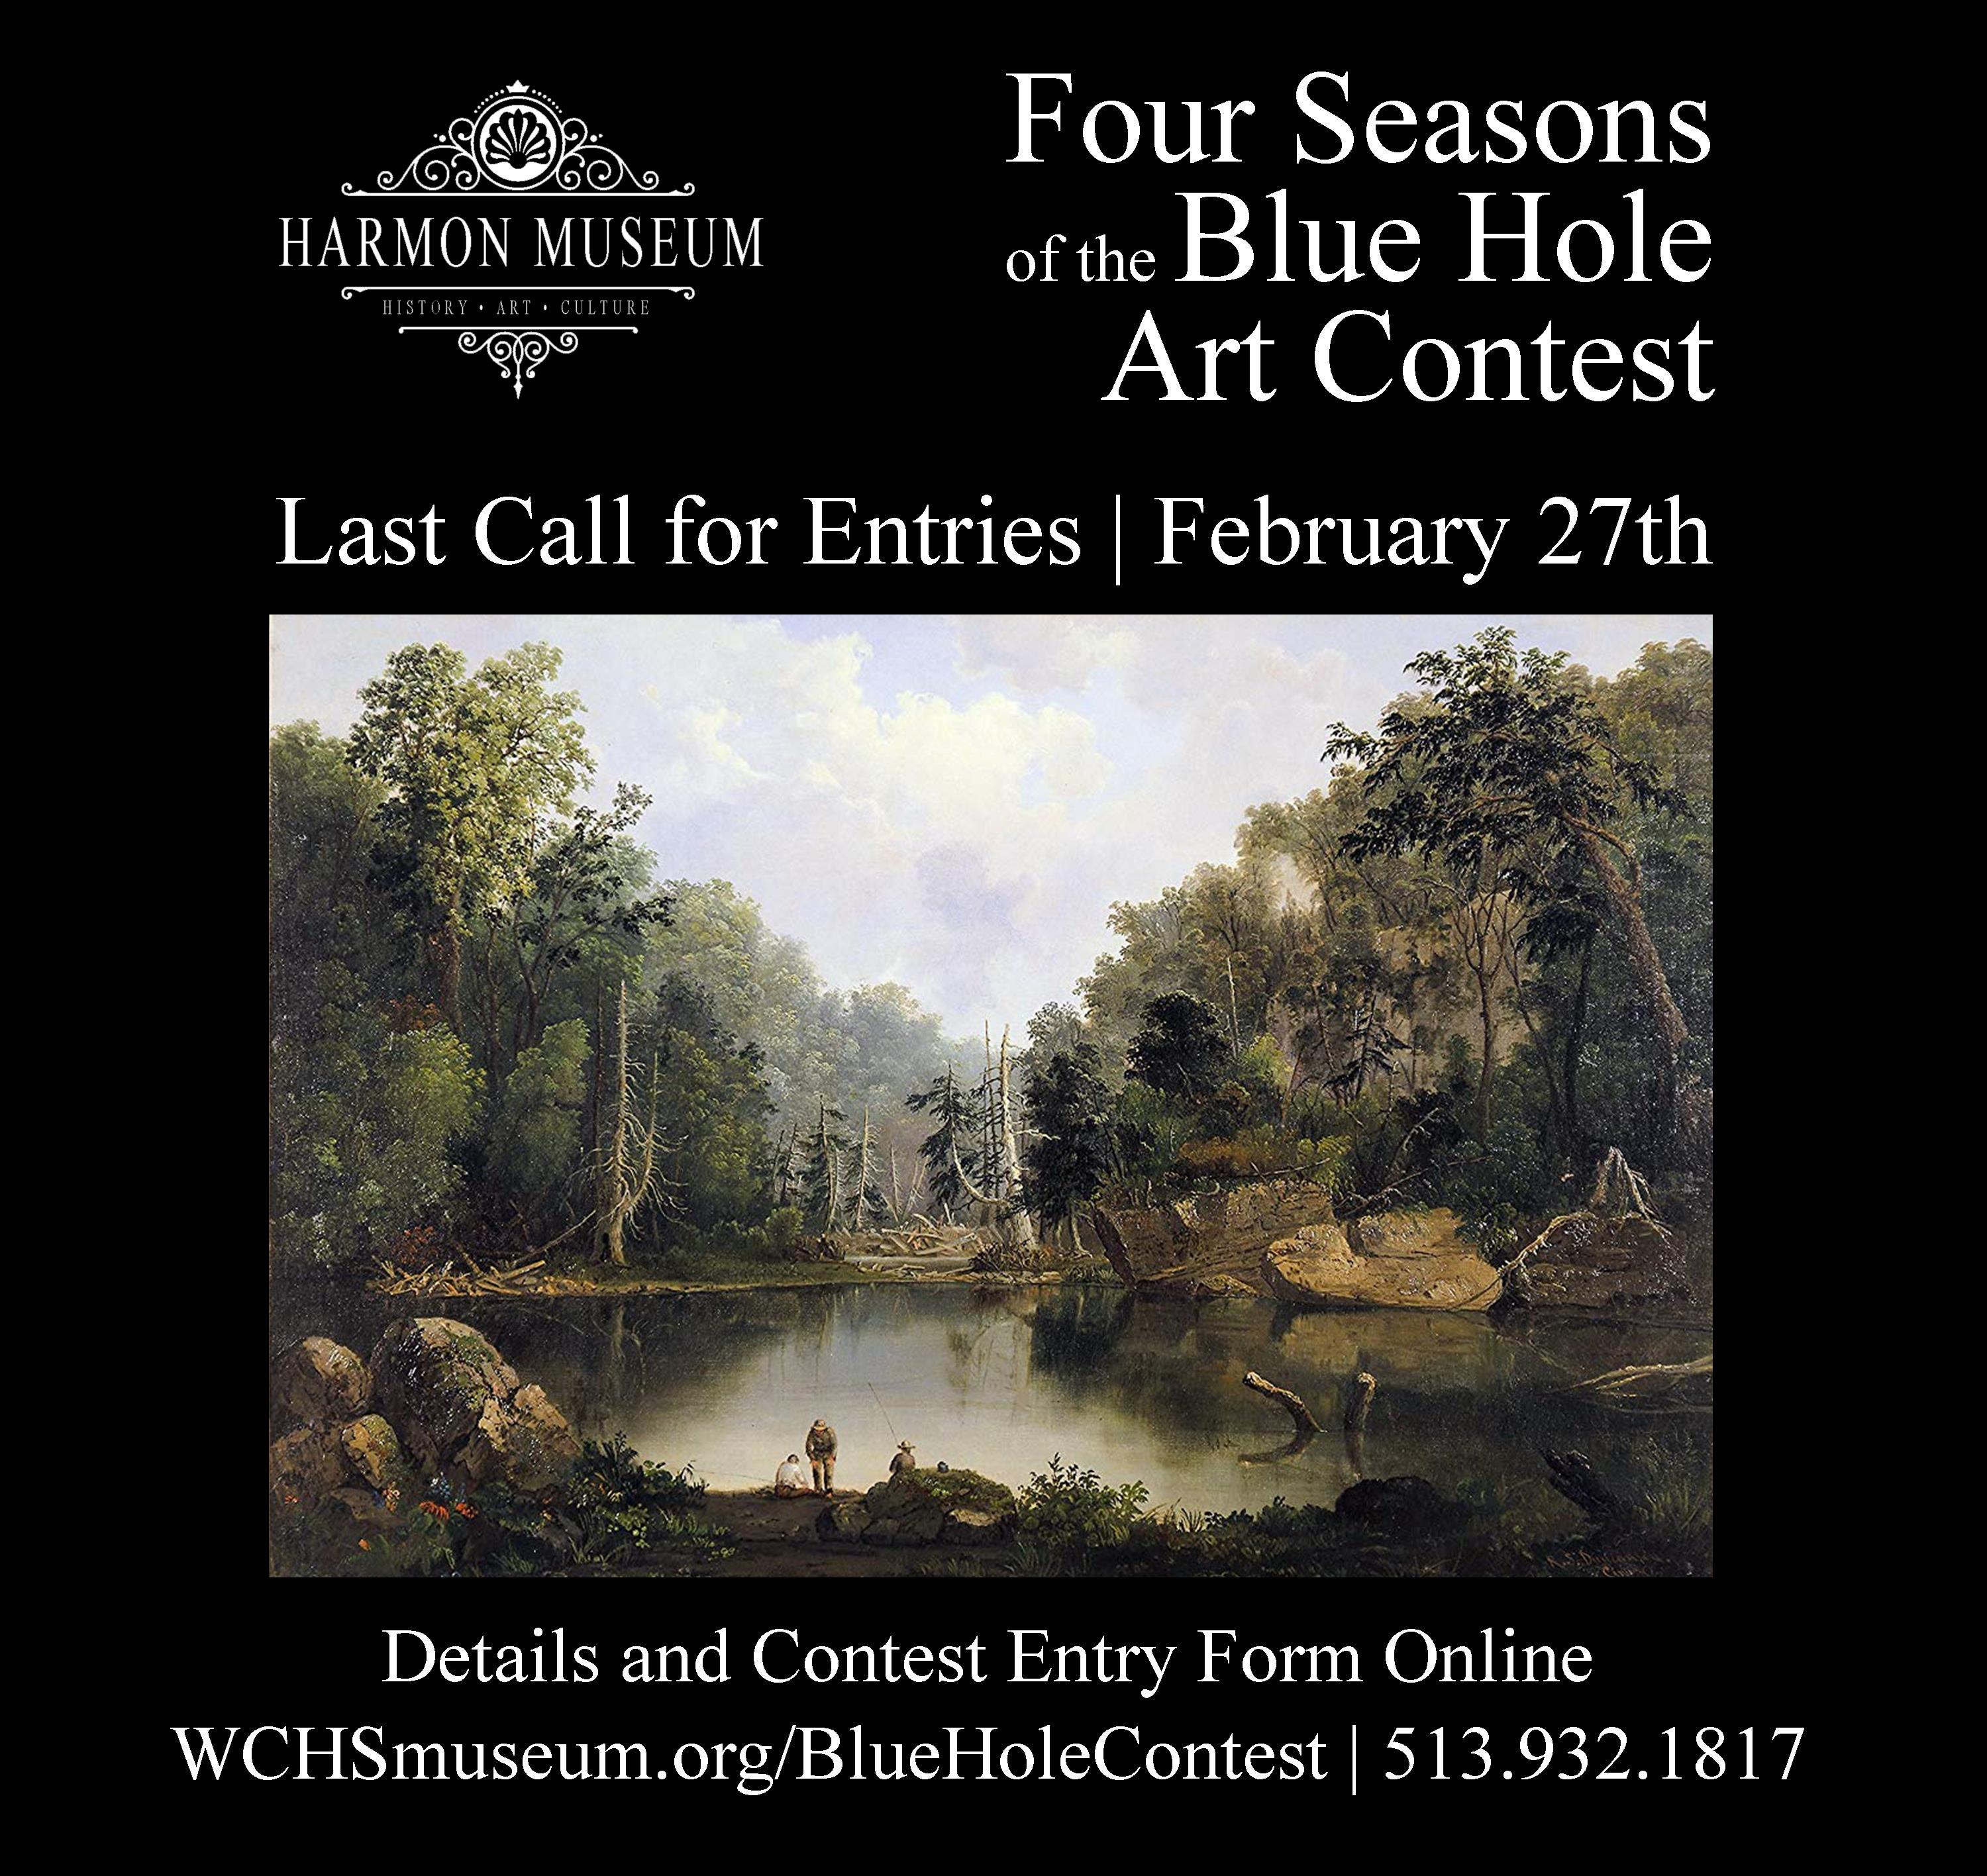 Four Seasons of the Blue Hole Art Contest